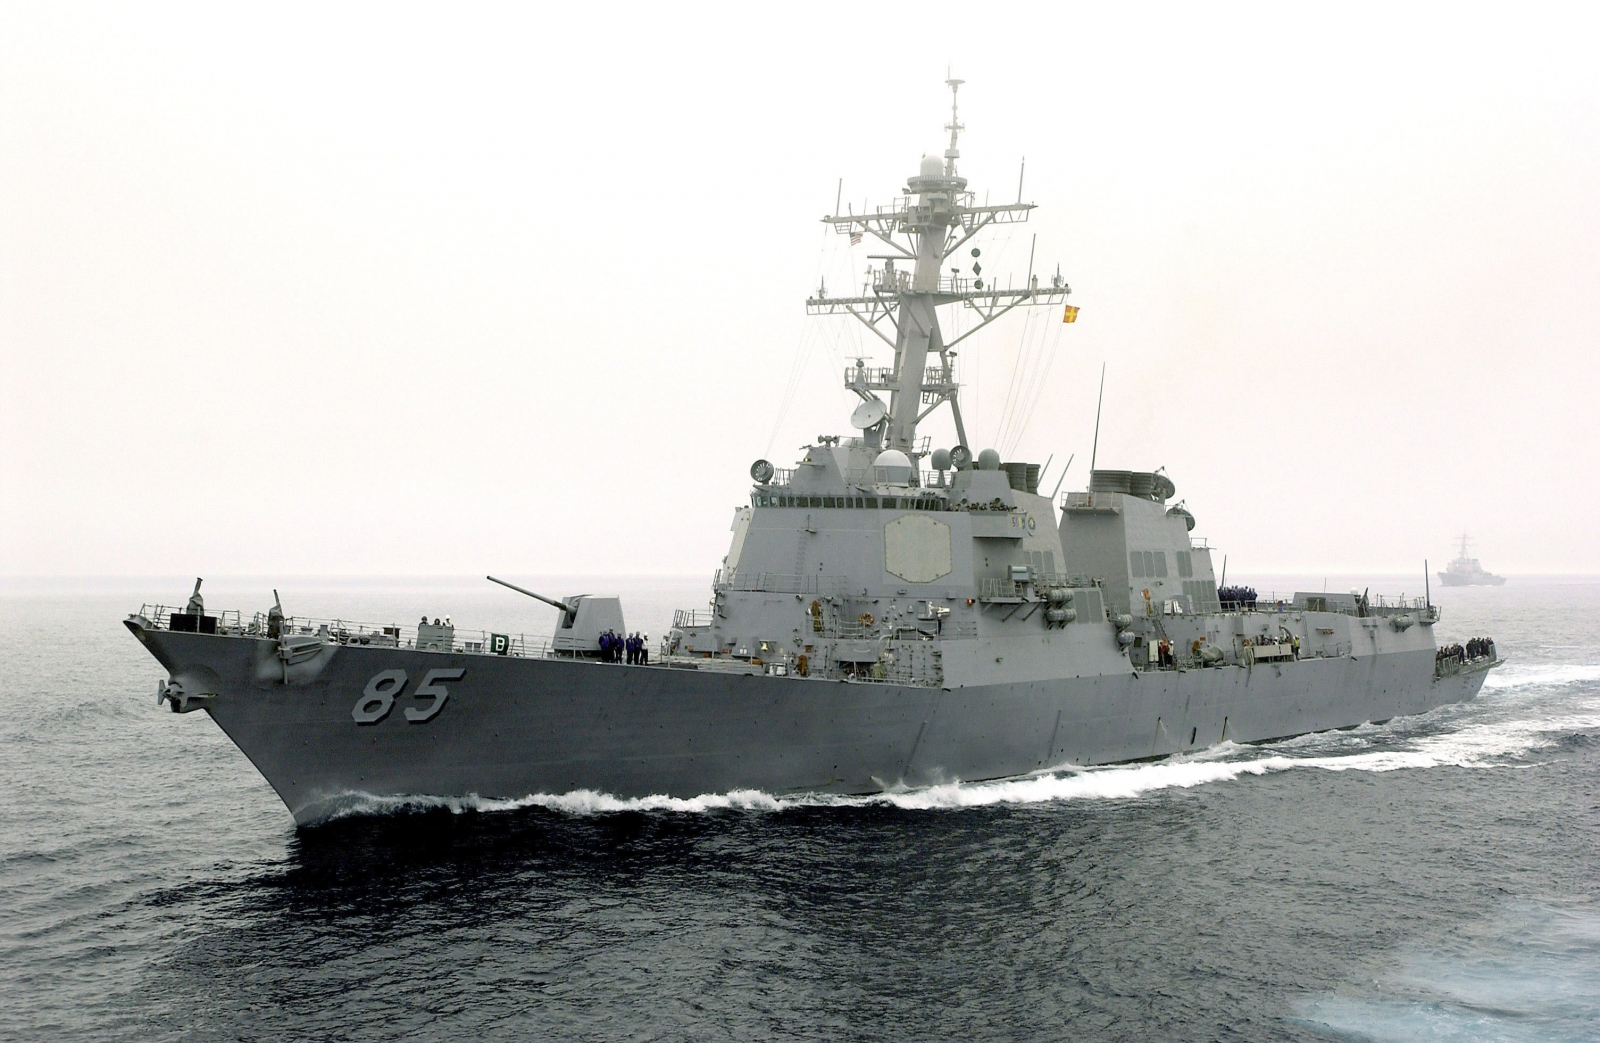 US Navy frigate